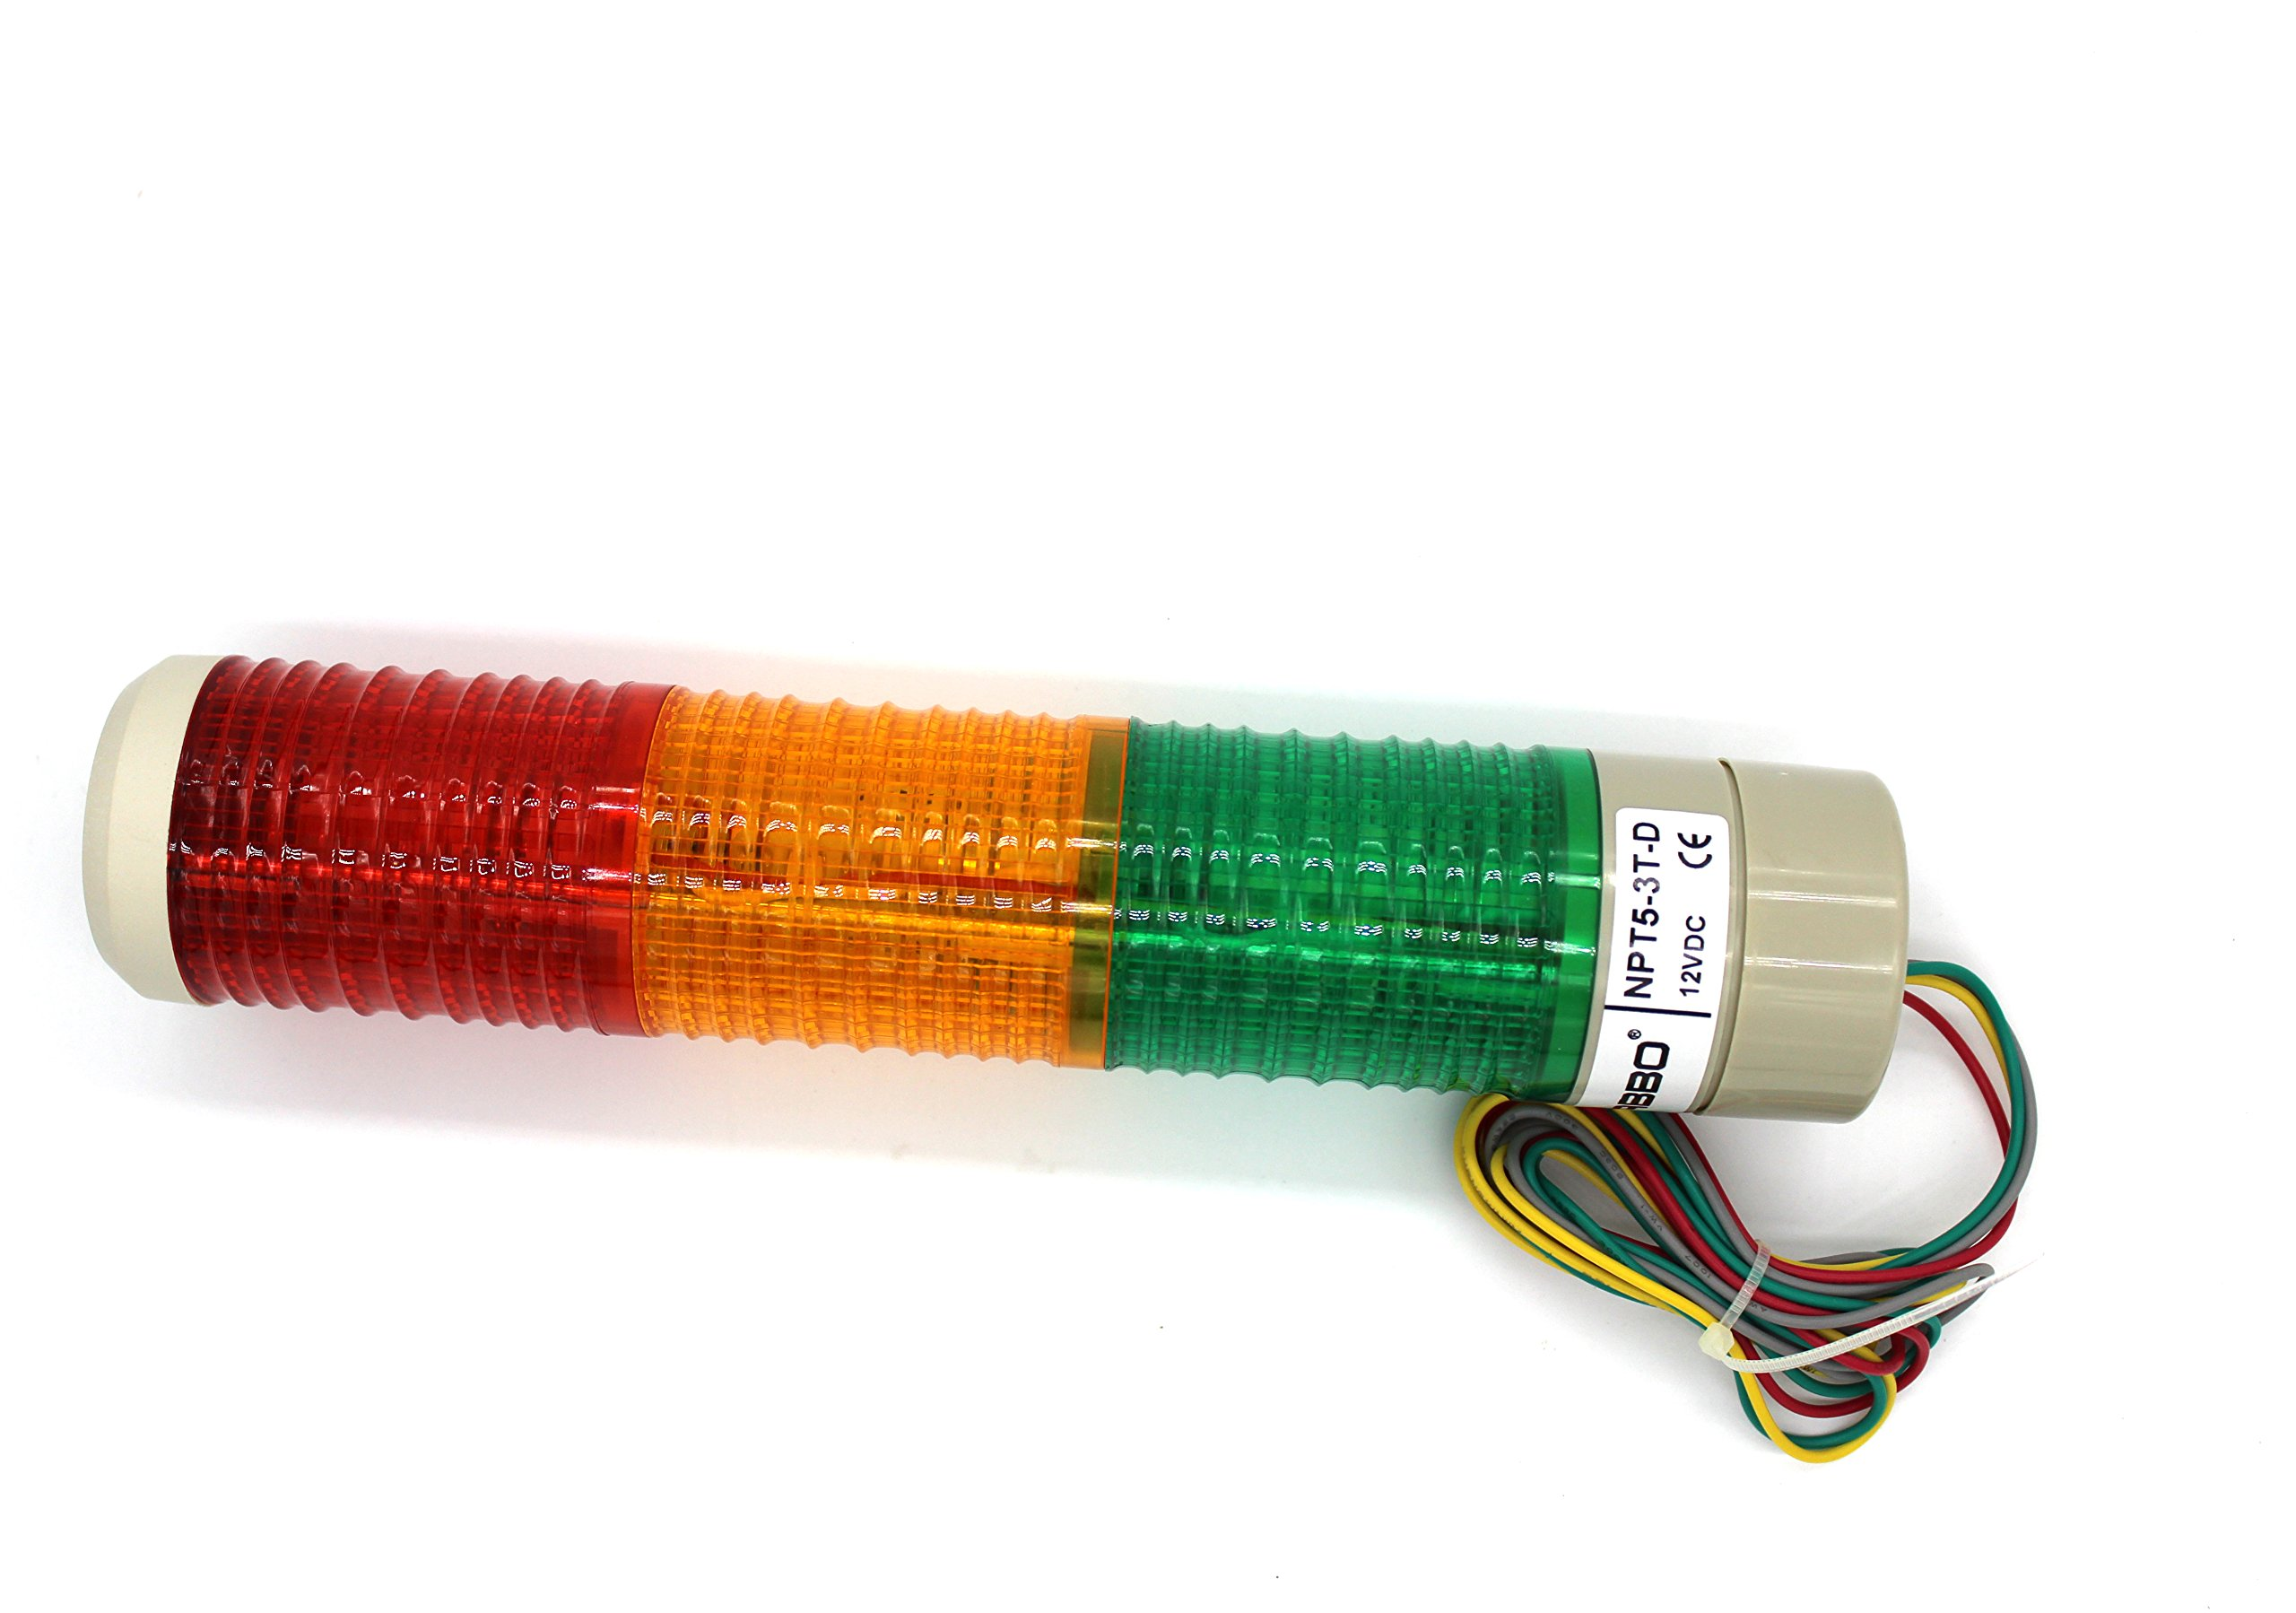 Industrial Signal Light Column LED Alarm Round Tower Light Indicator Warning light r Red Green Yellow DC 12V Steady On